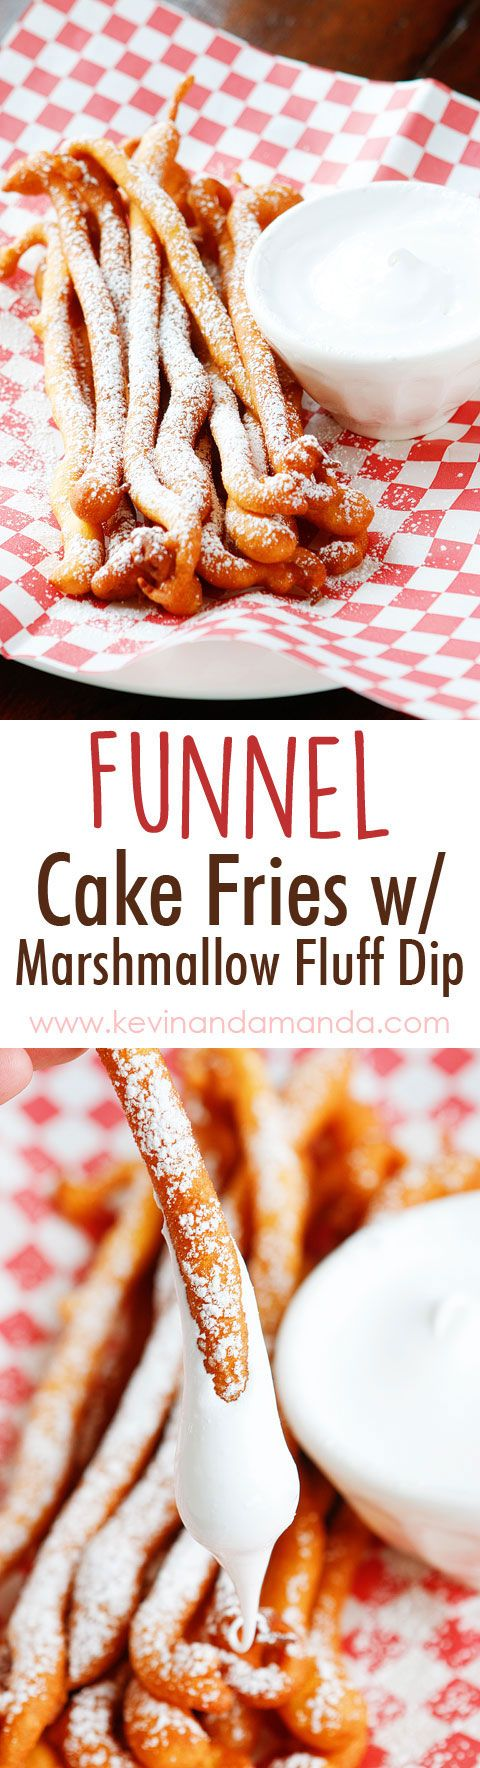 Funnel Cake Fries with Marshmallow Fluff Dip - So fun!! Super easy method, what a great idea!